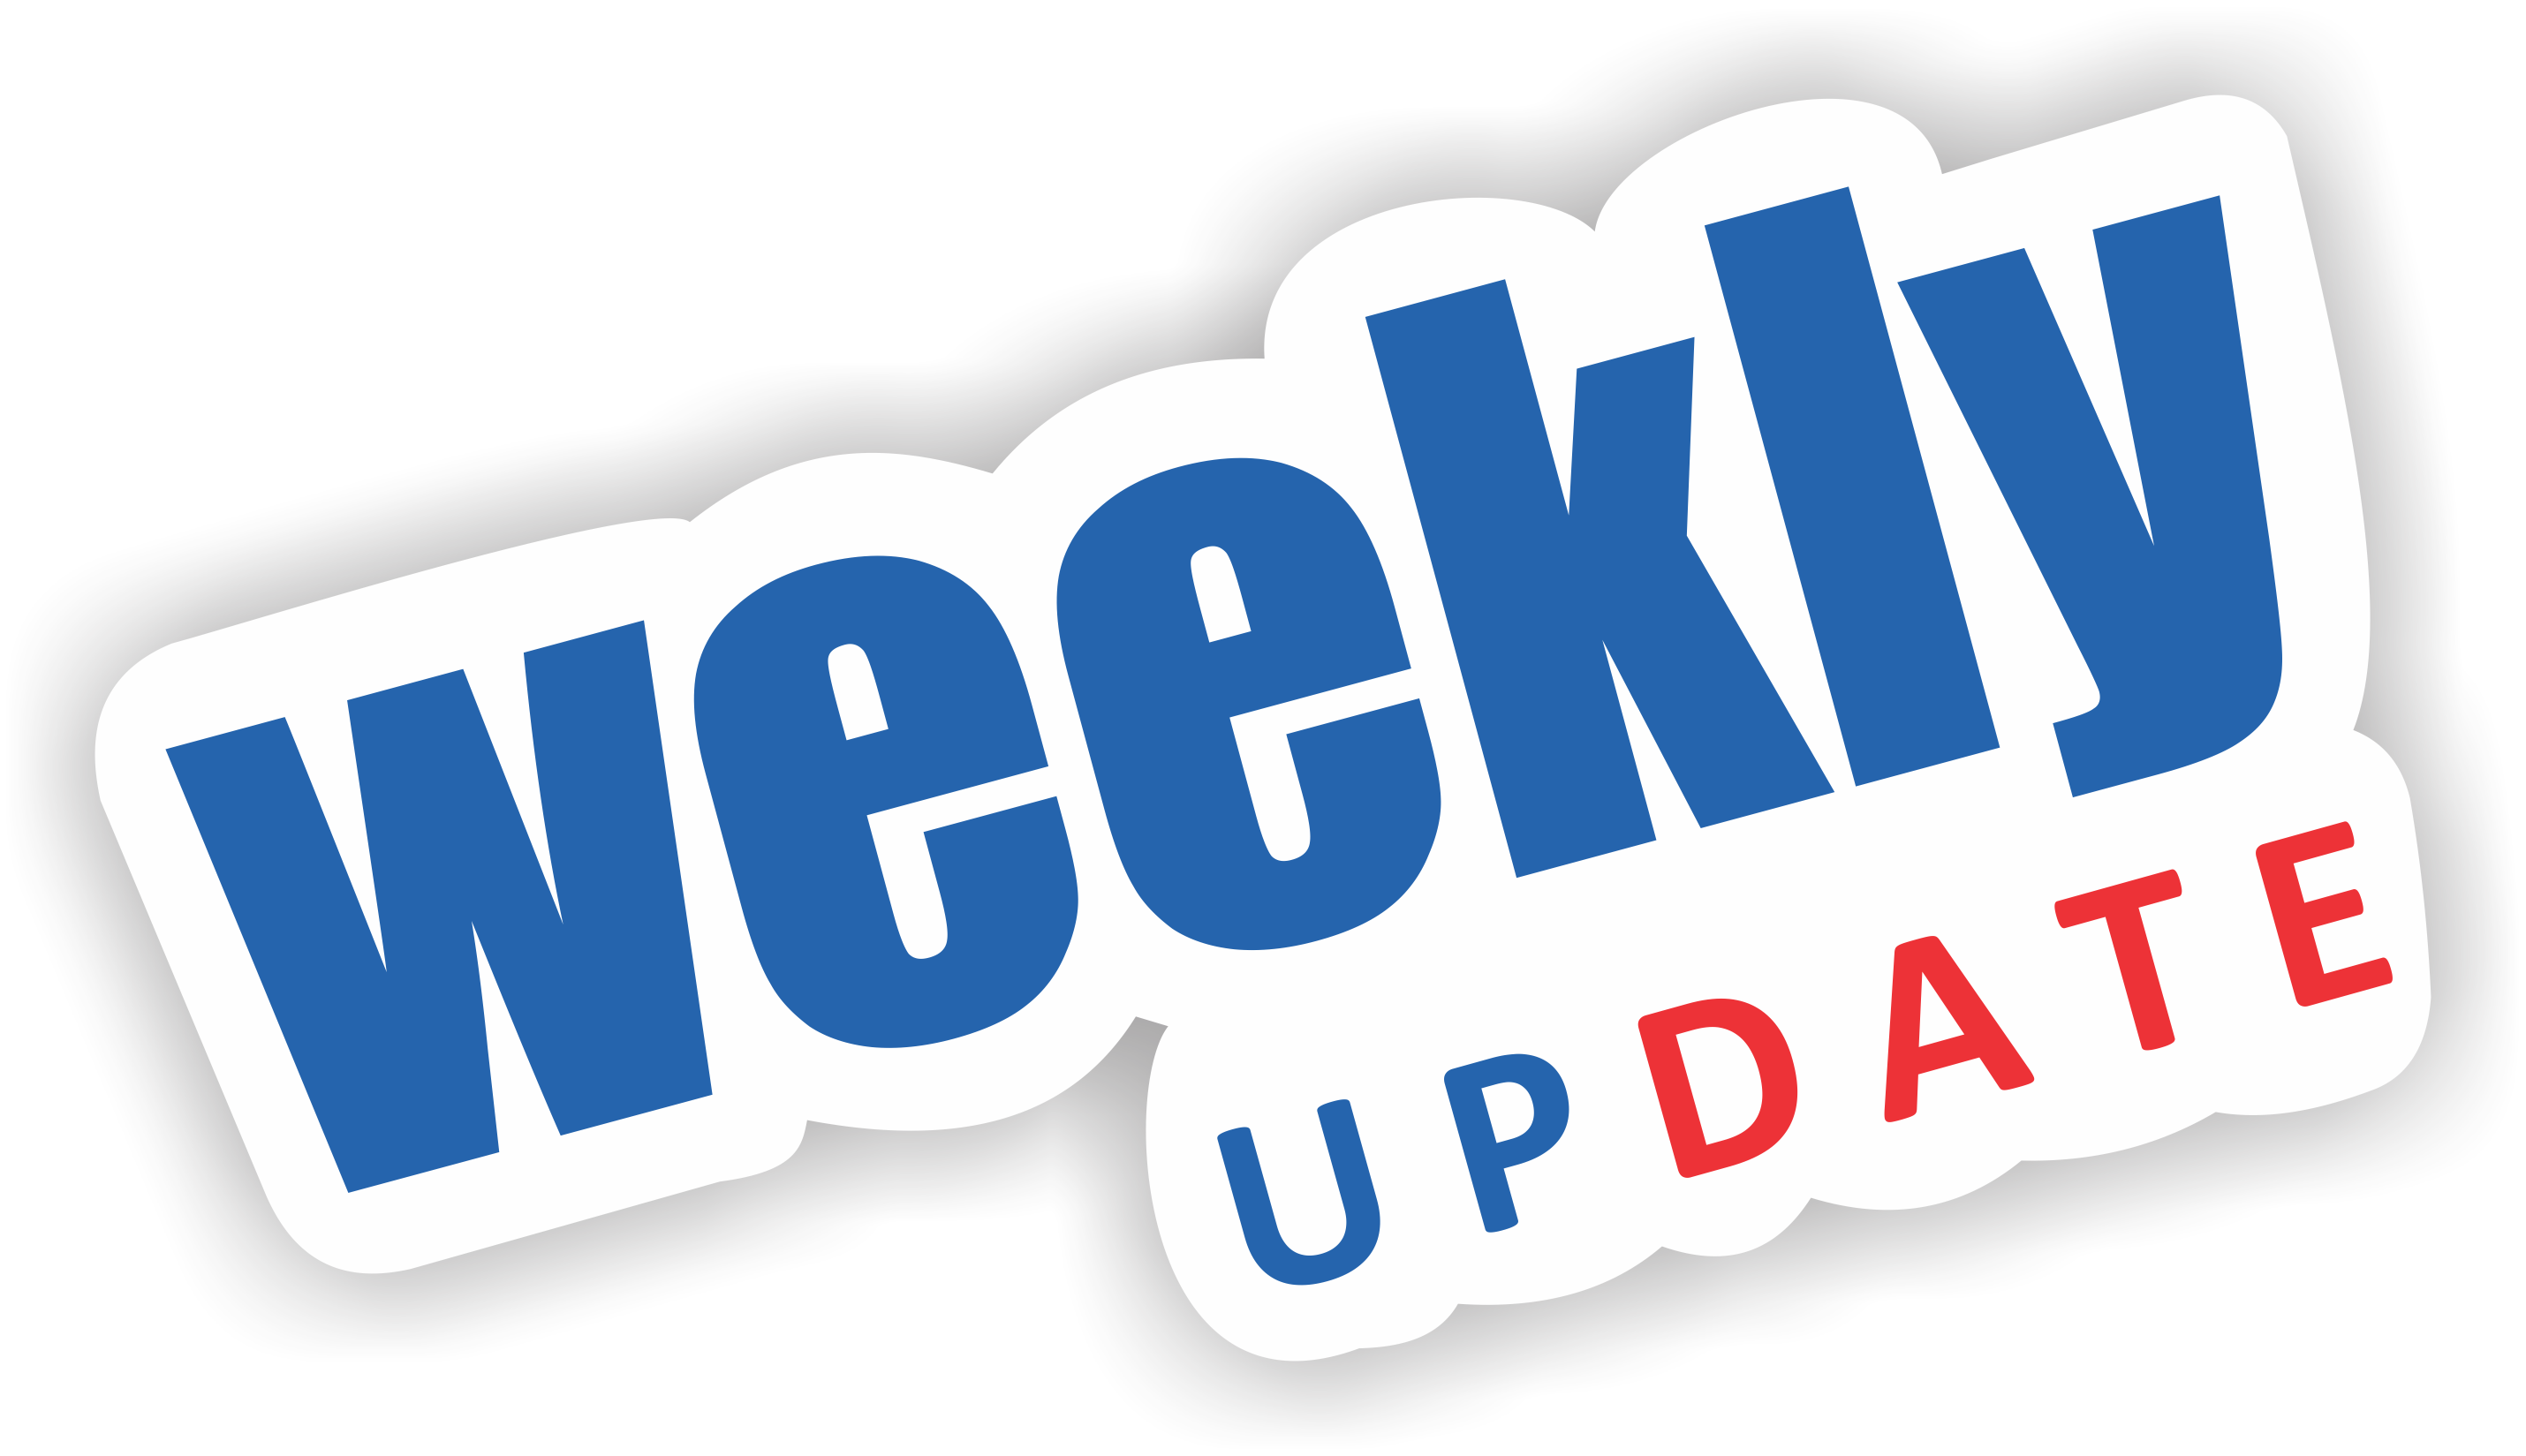 Test clipart weekly, Test weekly Transparent FREE for.